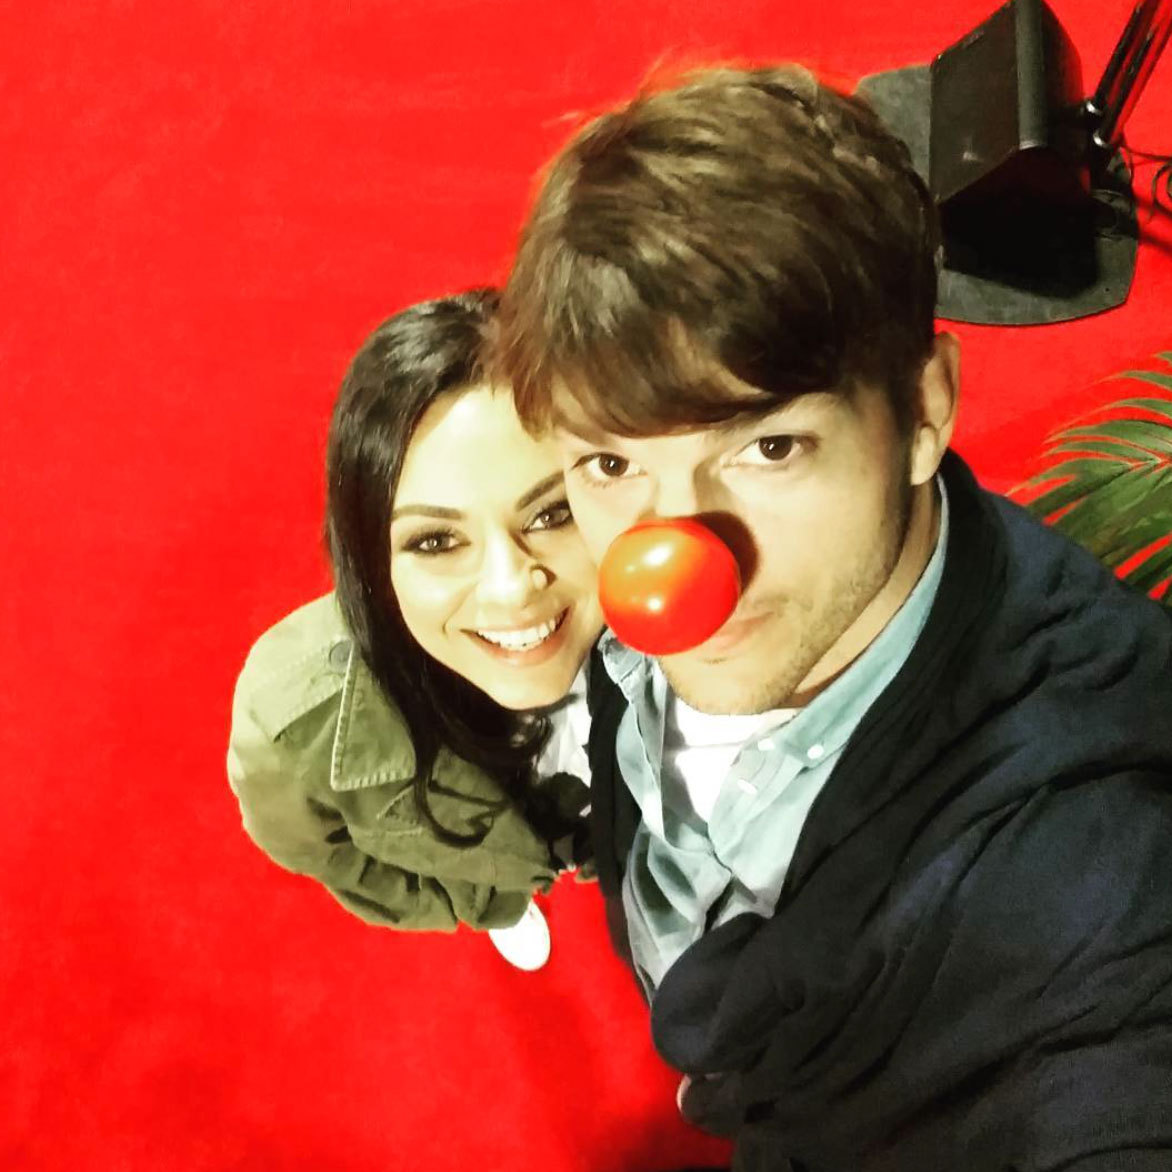 Hello from below! Ashton Kutcher snapped a photo with wife Mila Kunis at NBC's live Red Nose Day special, where they along with 70 other Hollywood stars came together to raise money for children in need.